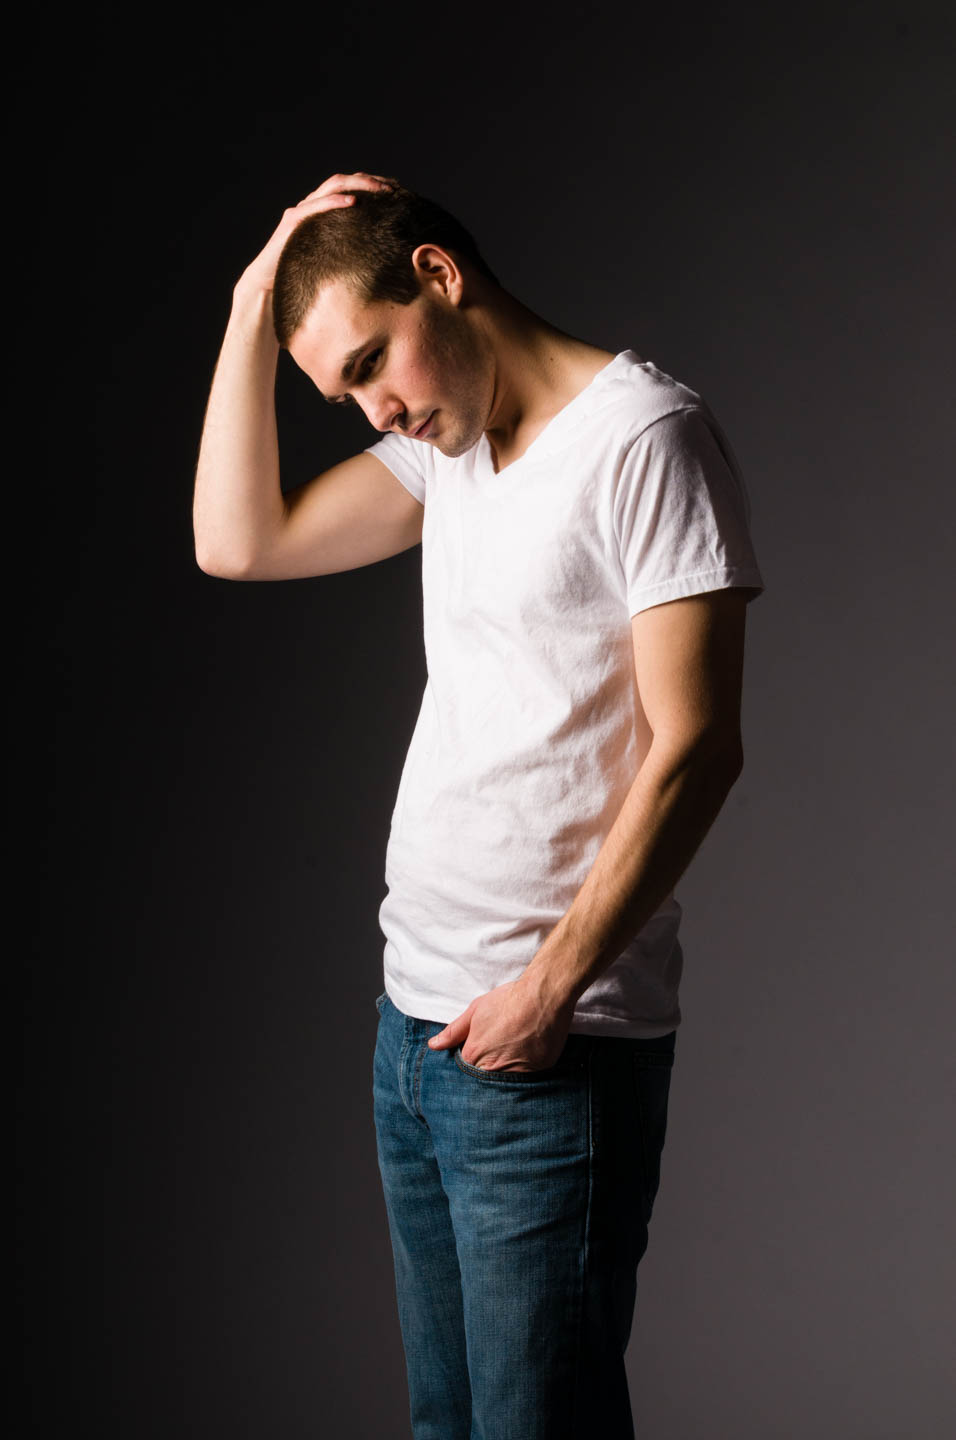 Simple white t-shirt and jeans for this series of photos